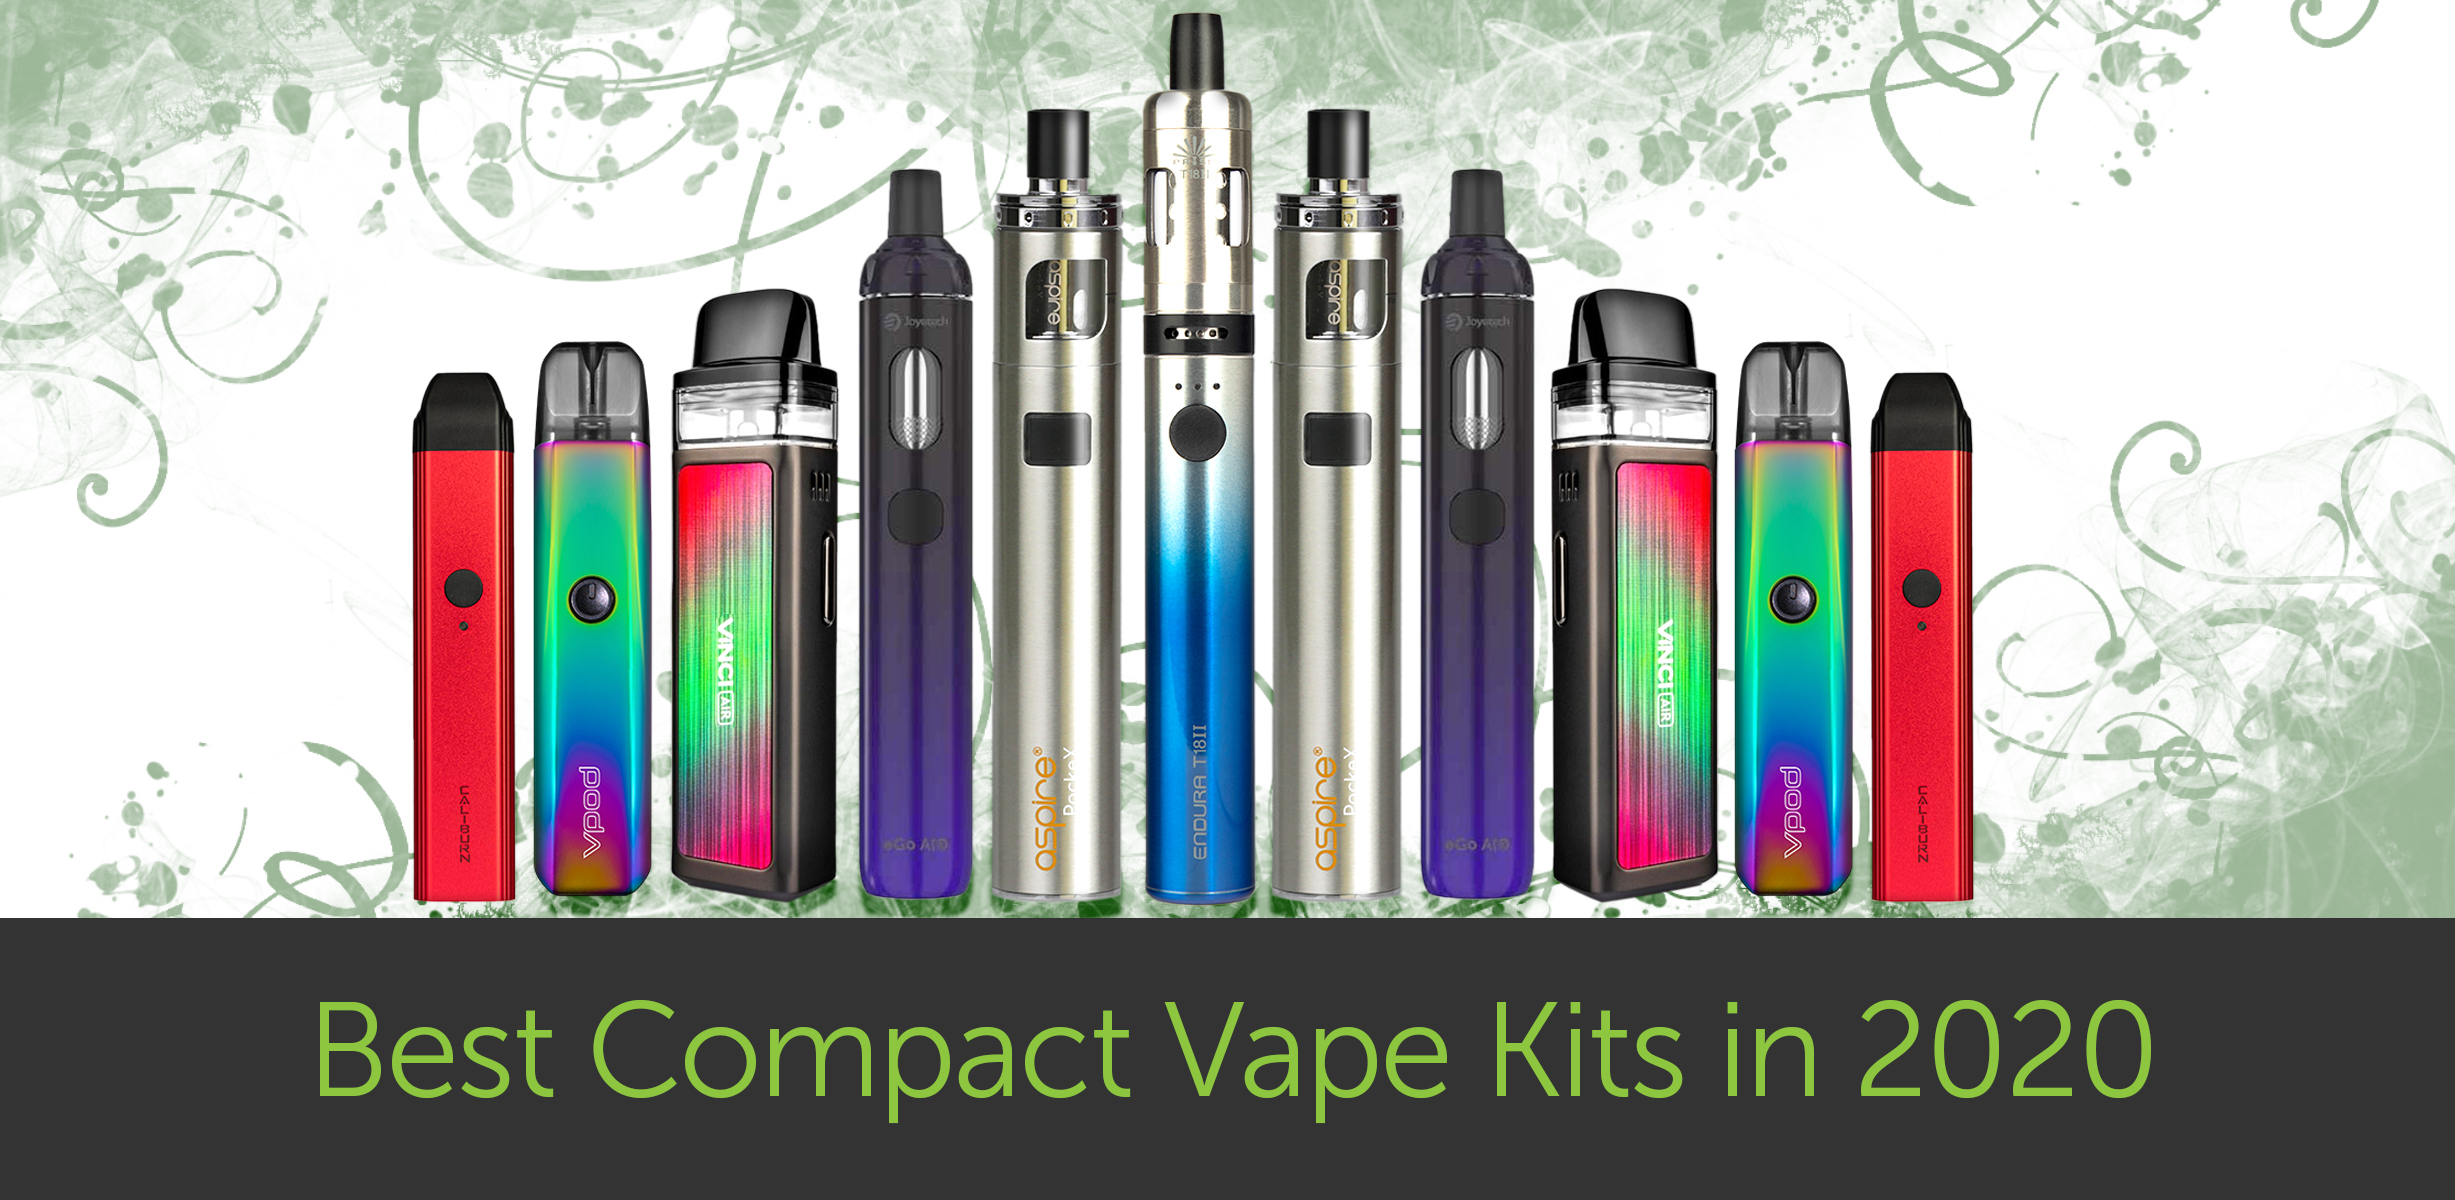 The Best Compact Vape Kits in 2020